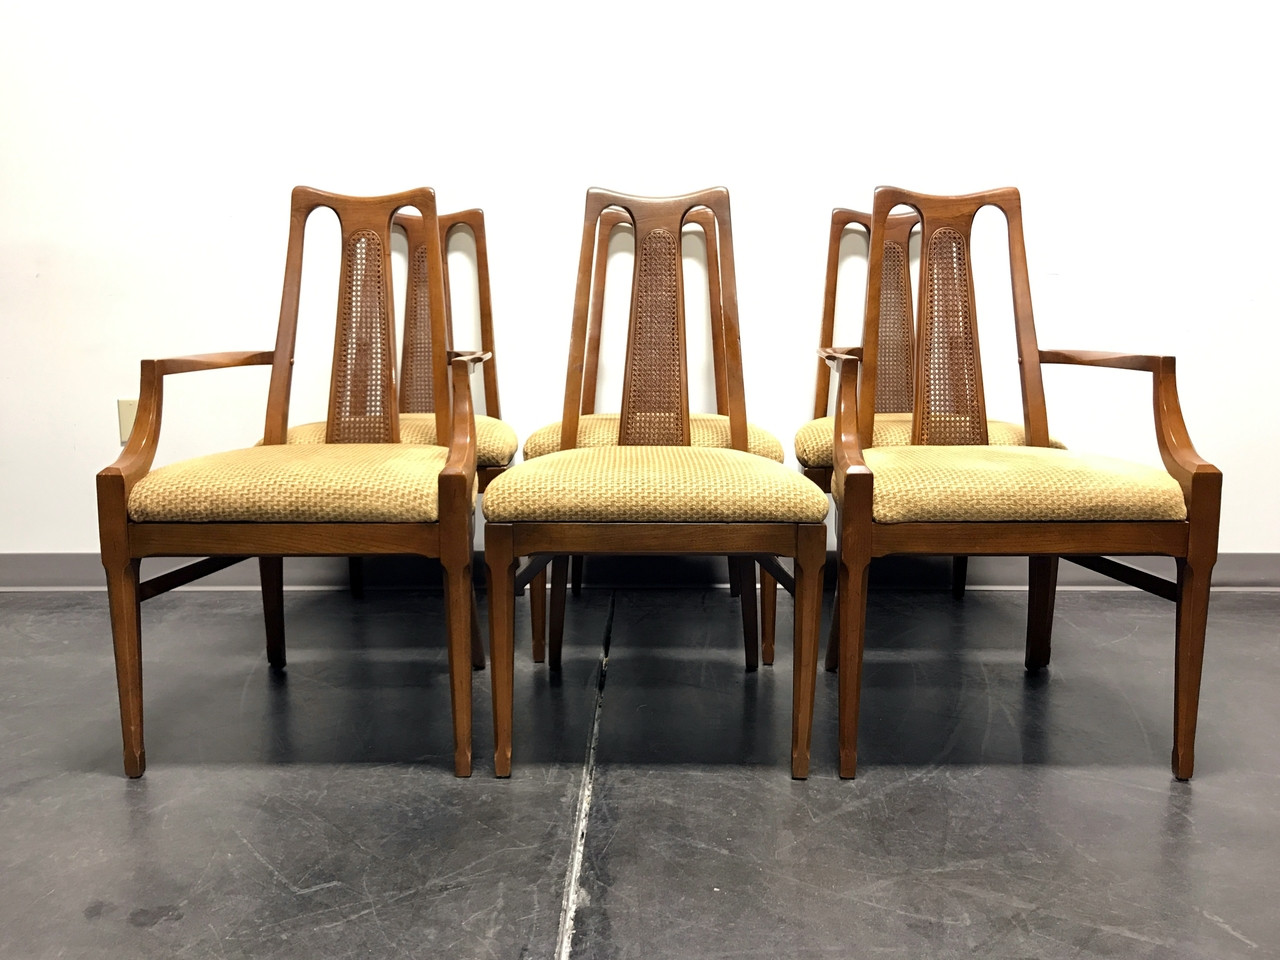 White furniture co mid century modern walnut cane dining chairs set